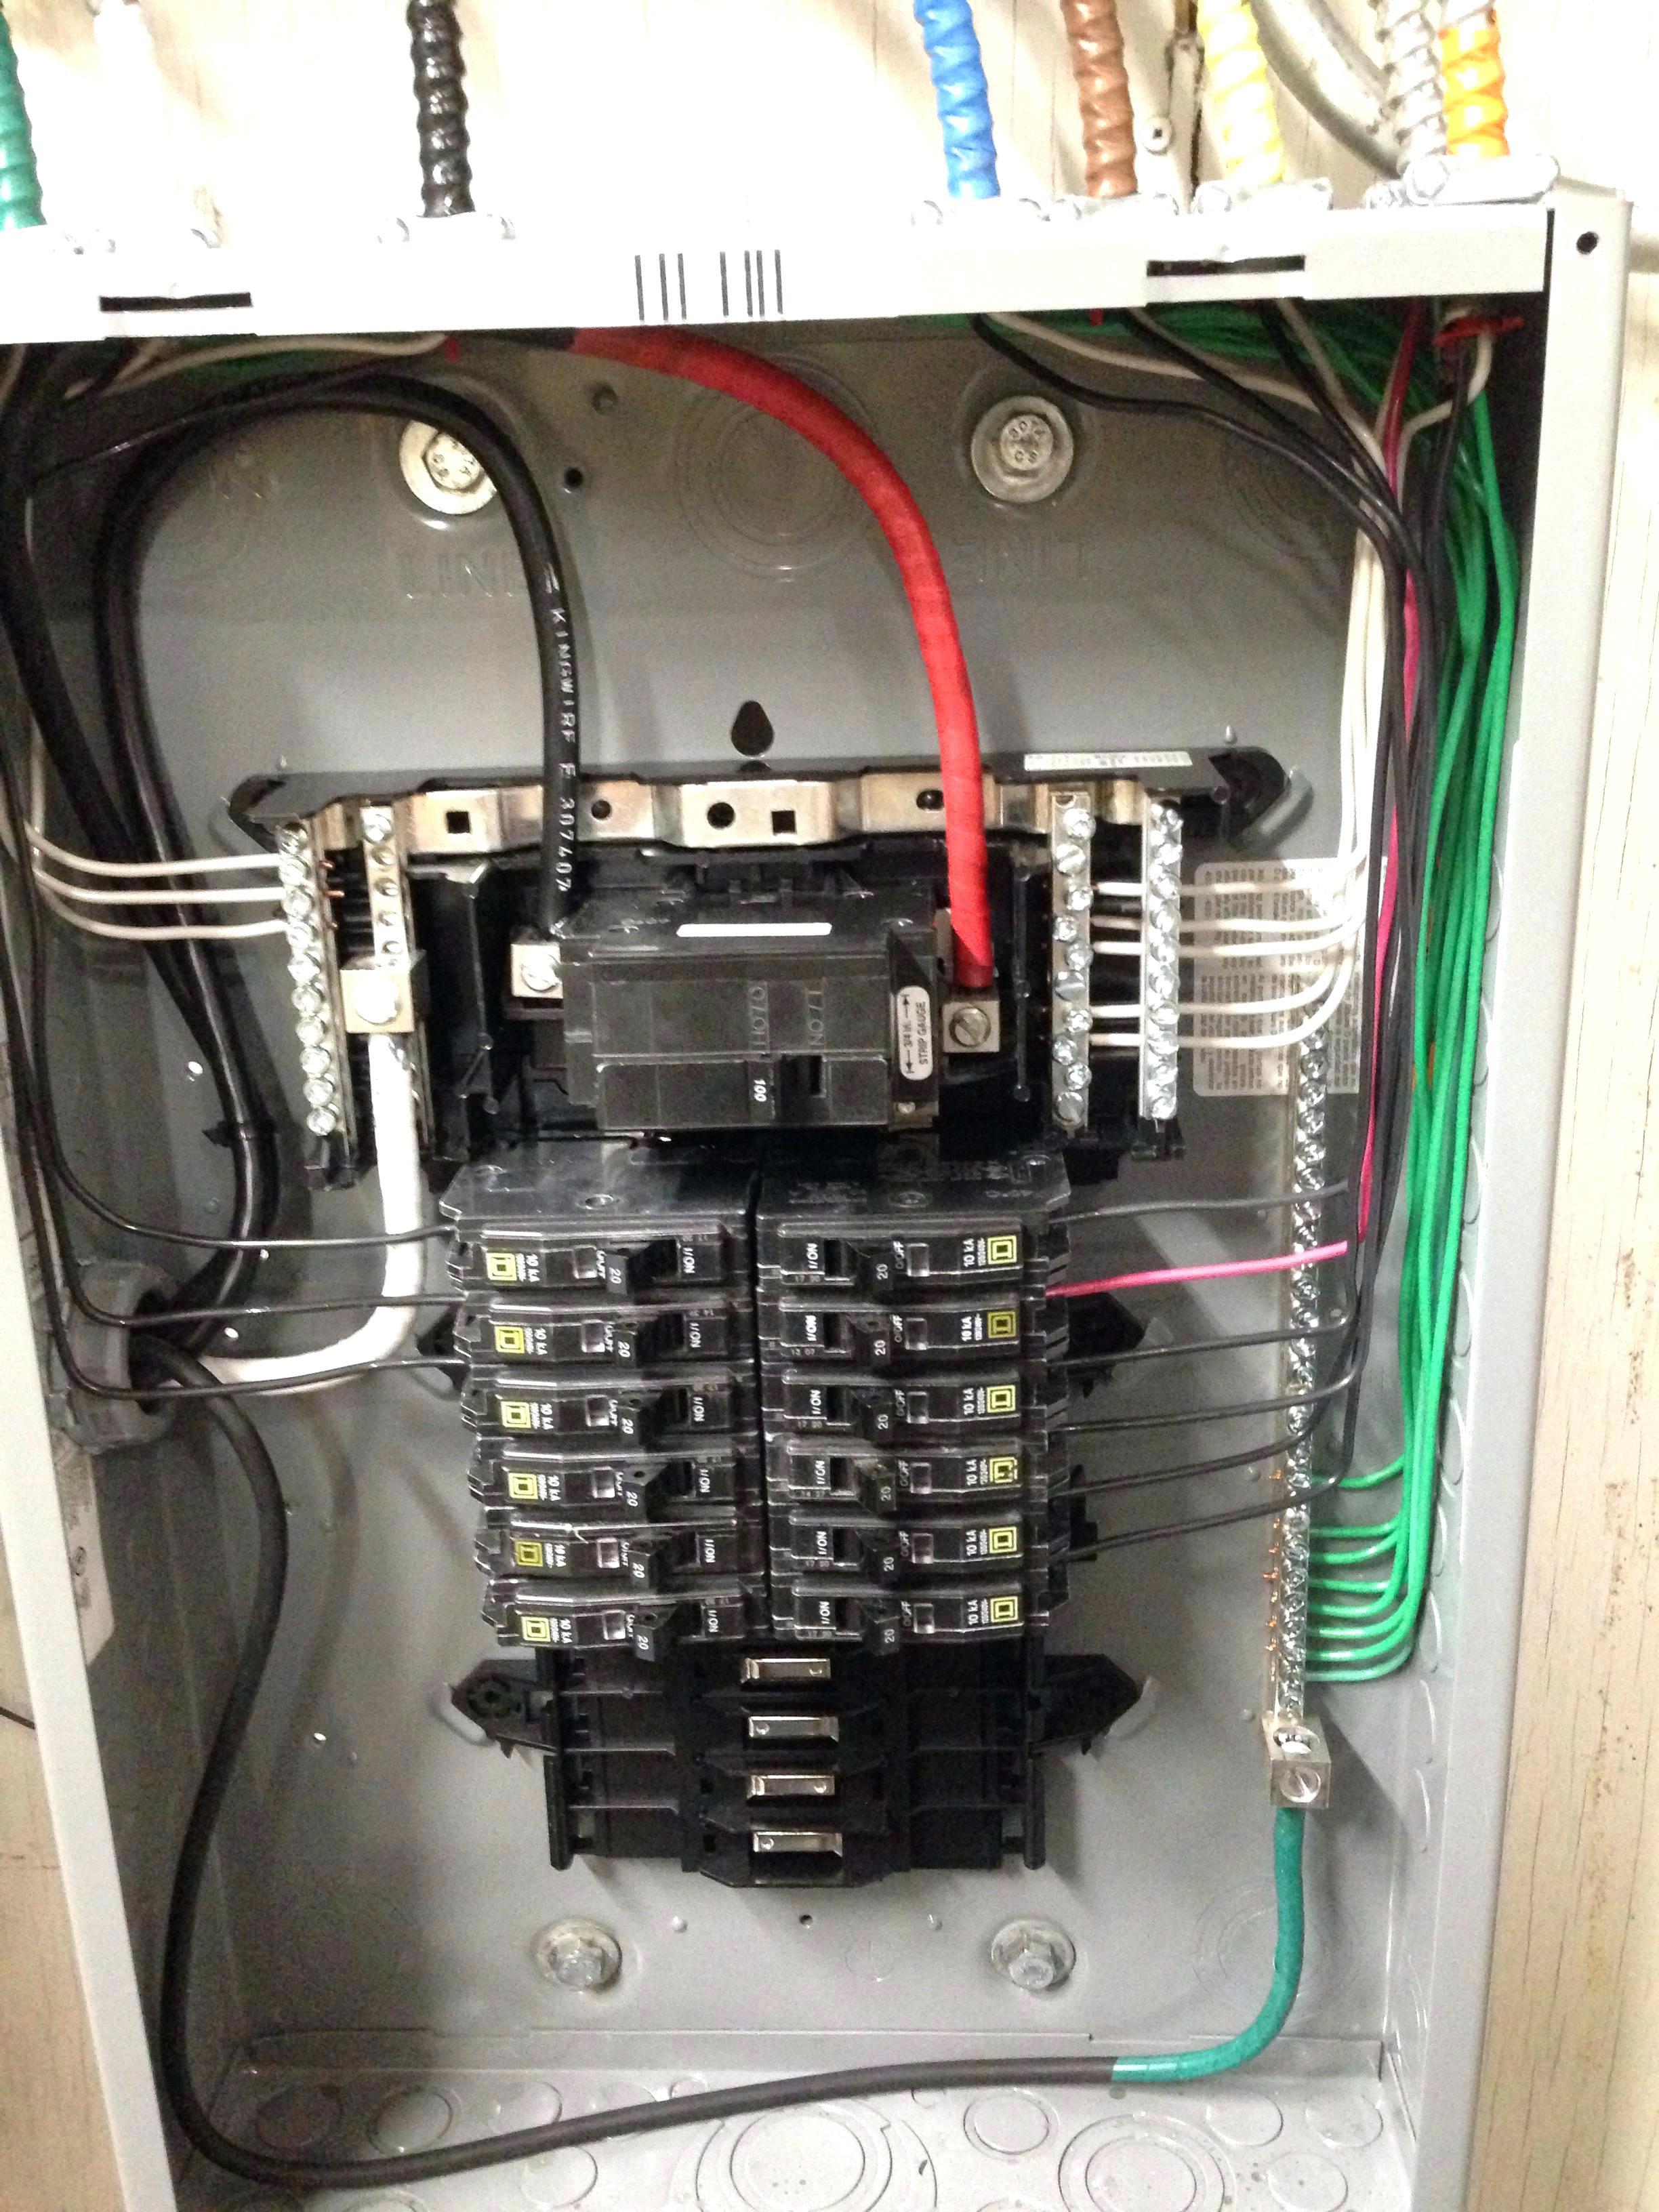 125 Amp Main Breaker Panel Wiring Diagram | Manual E-Books - 125 Amp Sub Panel Wiring Diagram